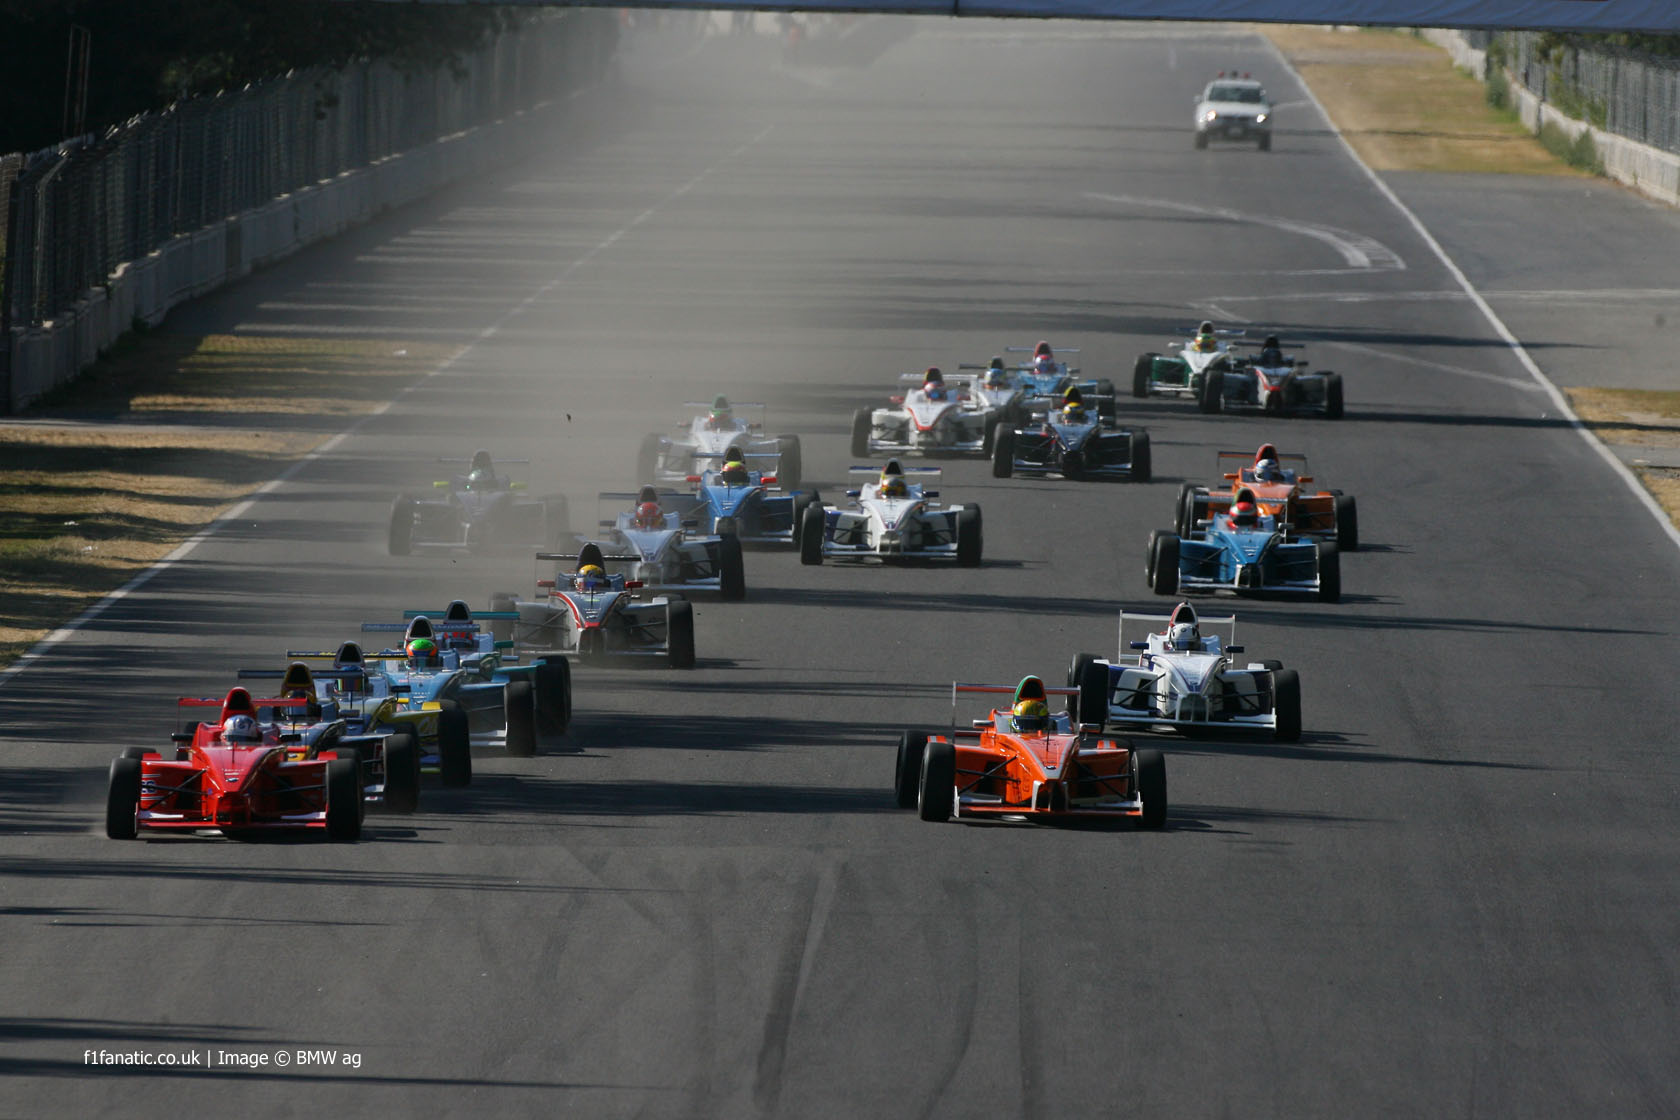 Start, Formula BMW World Final, Autodromo Hermanos Rodriguez, 2008